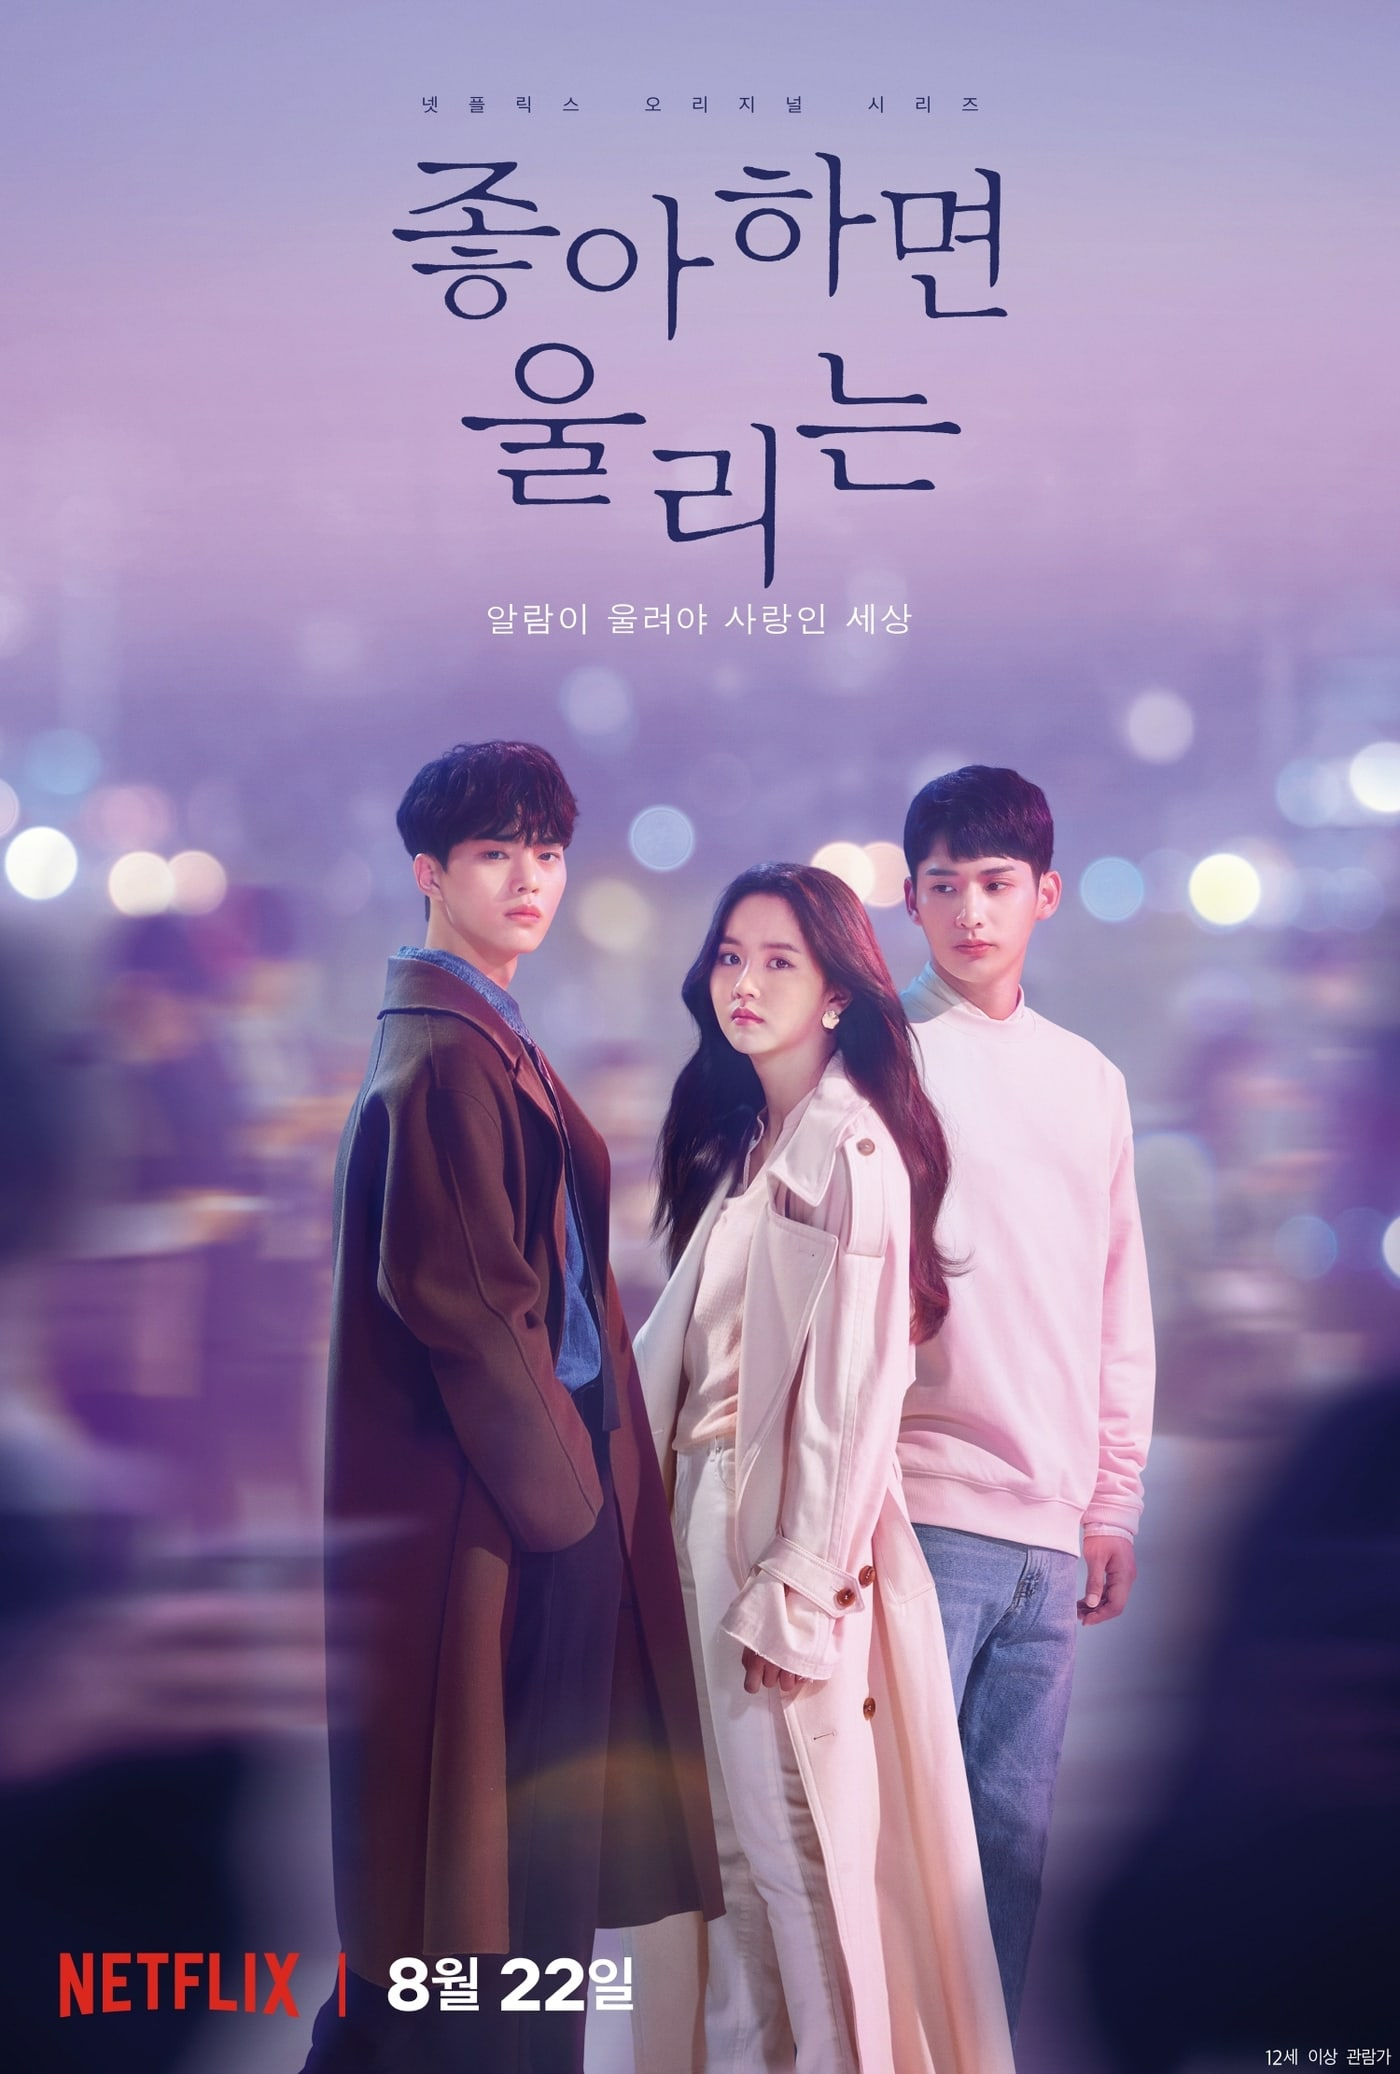 [K-Drama]: 'Love Alarm' launched a new trailer that stressed the love triangle between Kim So Hyun and his two boyfriends